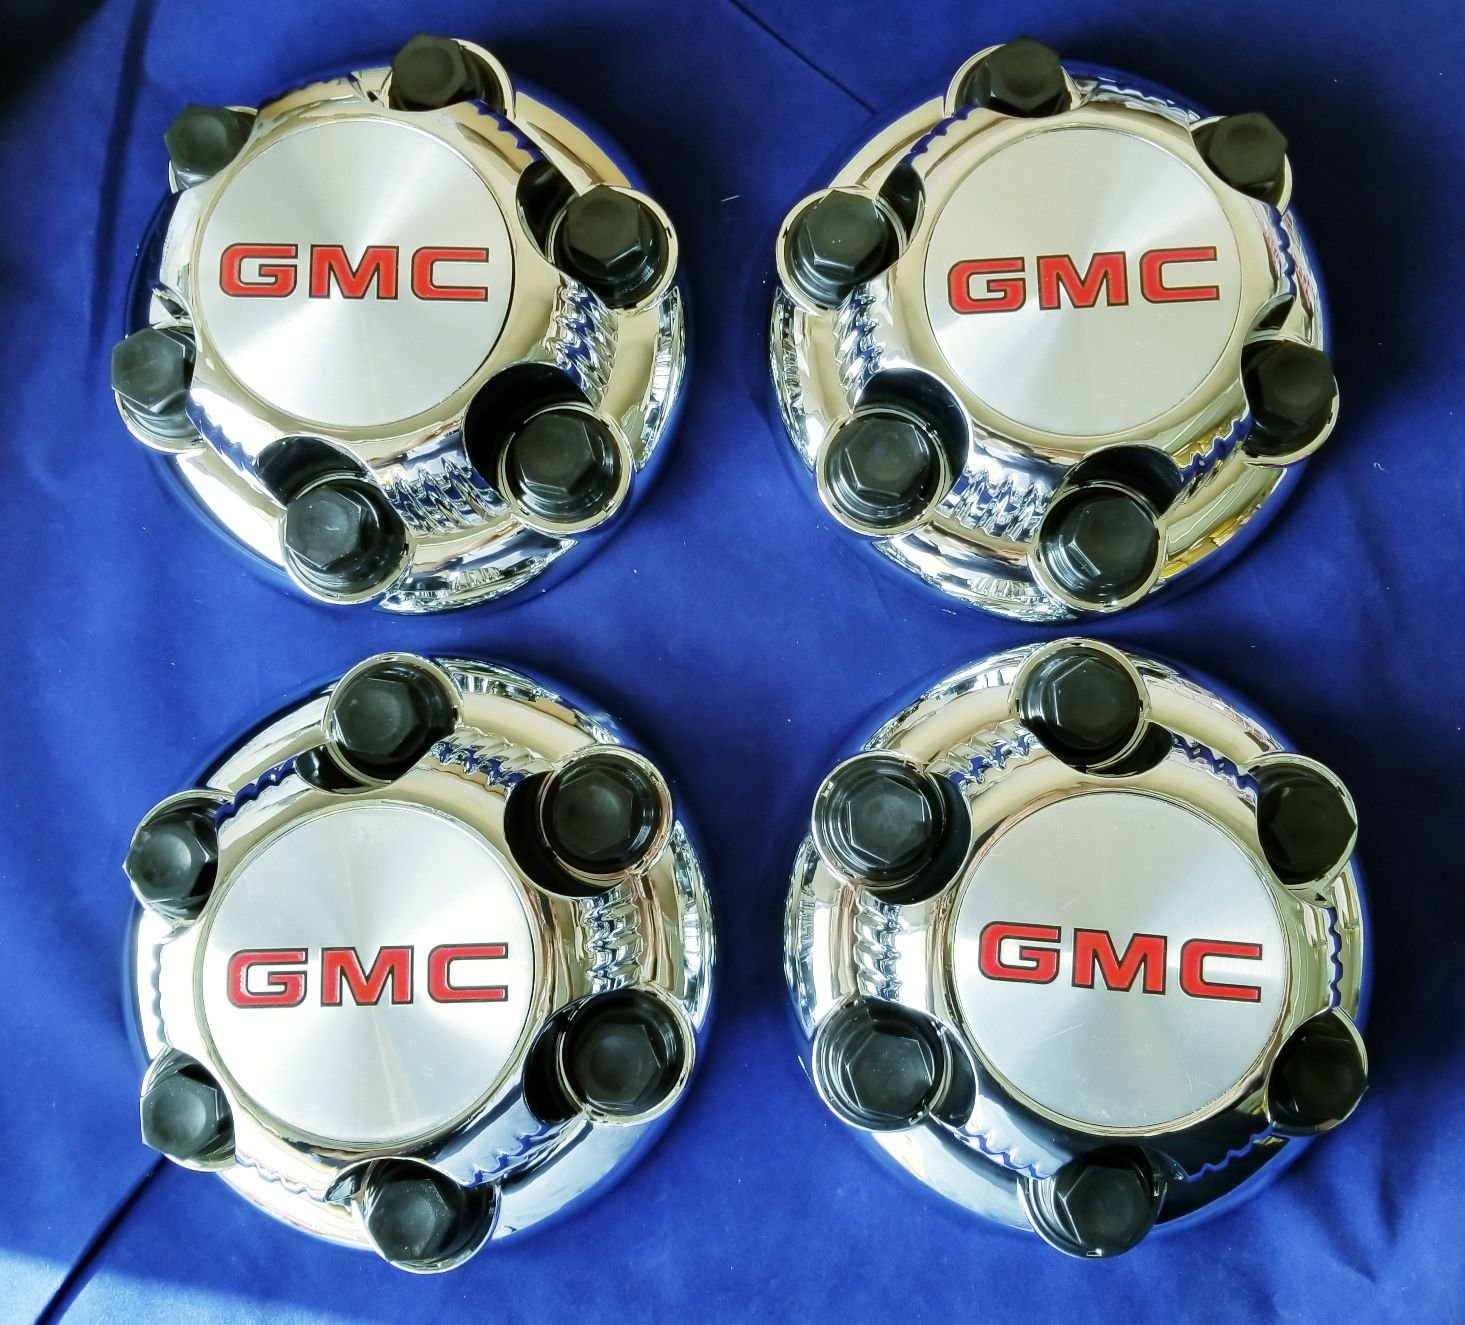 4 X GMC HD 8 Lug CHROME Center Caps Hubcaps Wheel Cover, 2000-2013 # 15006332 15052379 5195 5198 C5195 5198S Savana Sierra Yukon Van 2500 3500 Pickup Truck SRW JDM WORLD